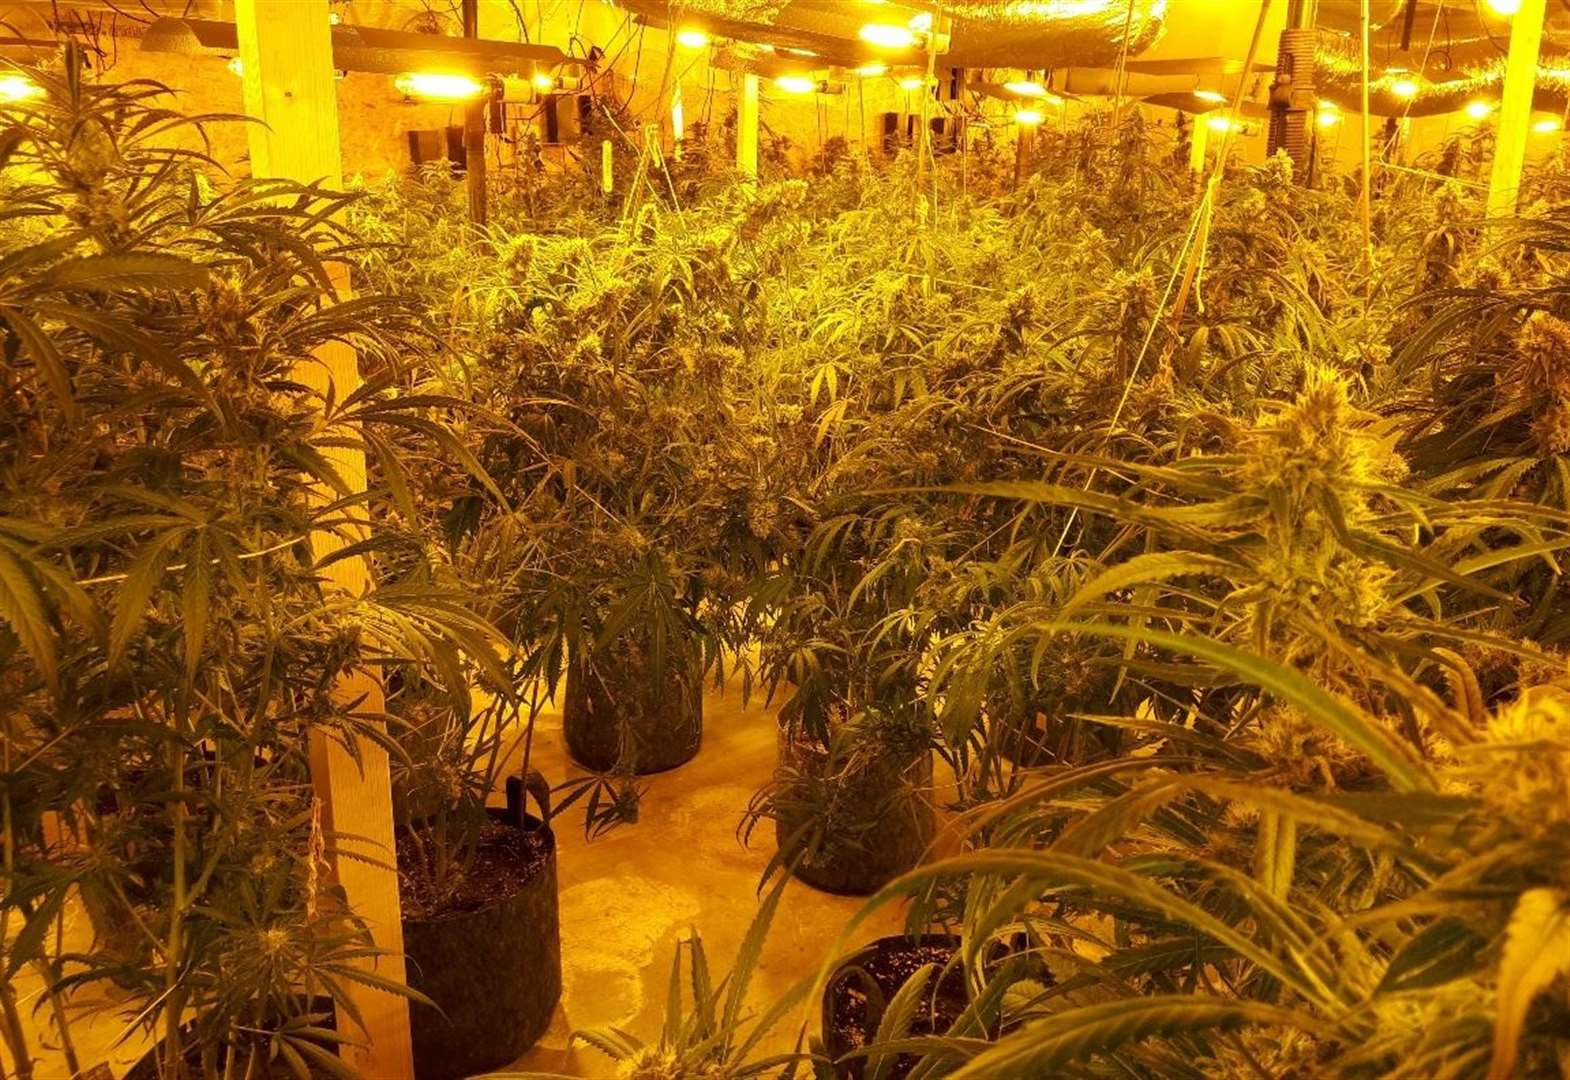 Two jailed for £1m cannabis farm